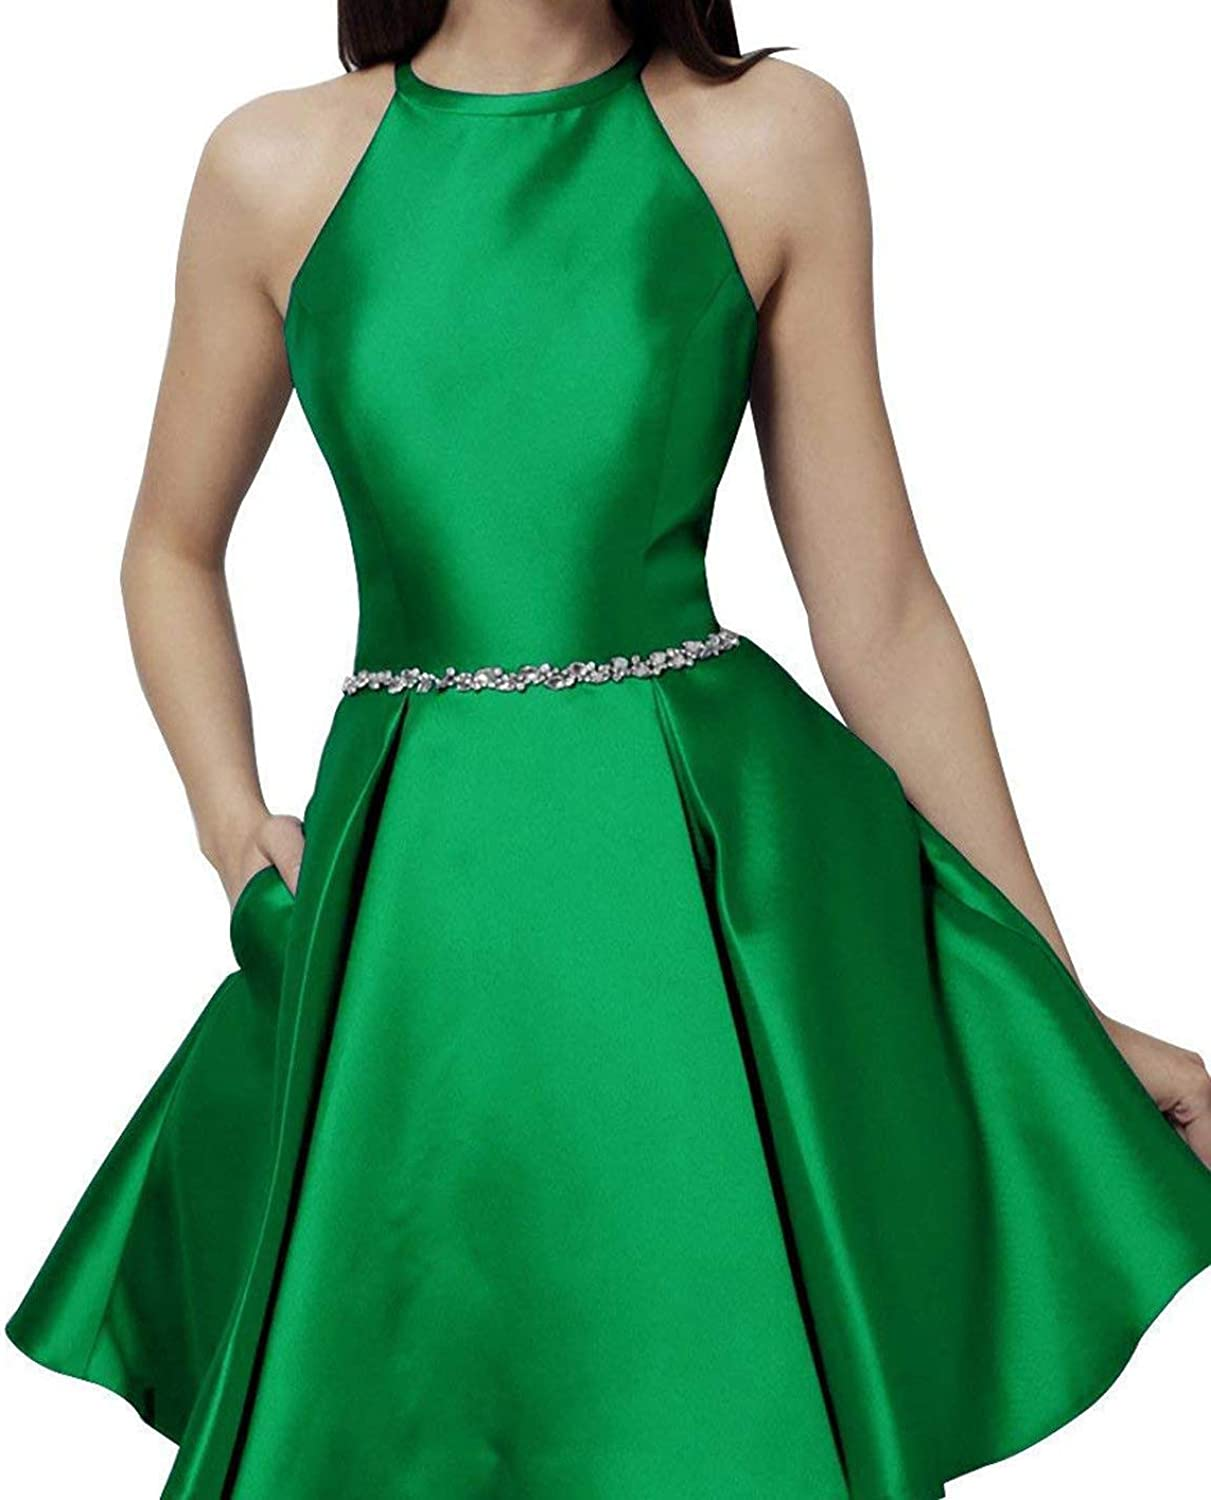 XingMeng Halter Short Homecoming Dress Beaded Satin Mini Prom Cocktail Dress